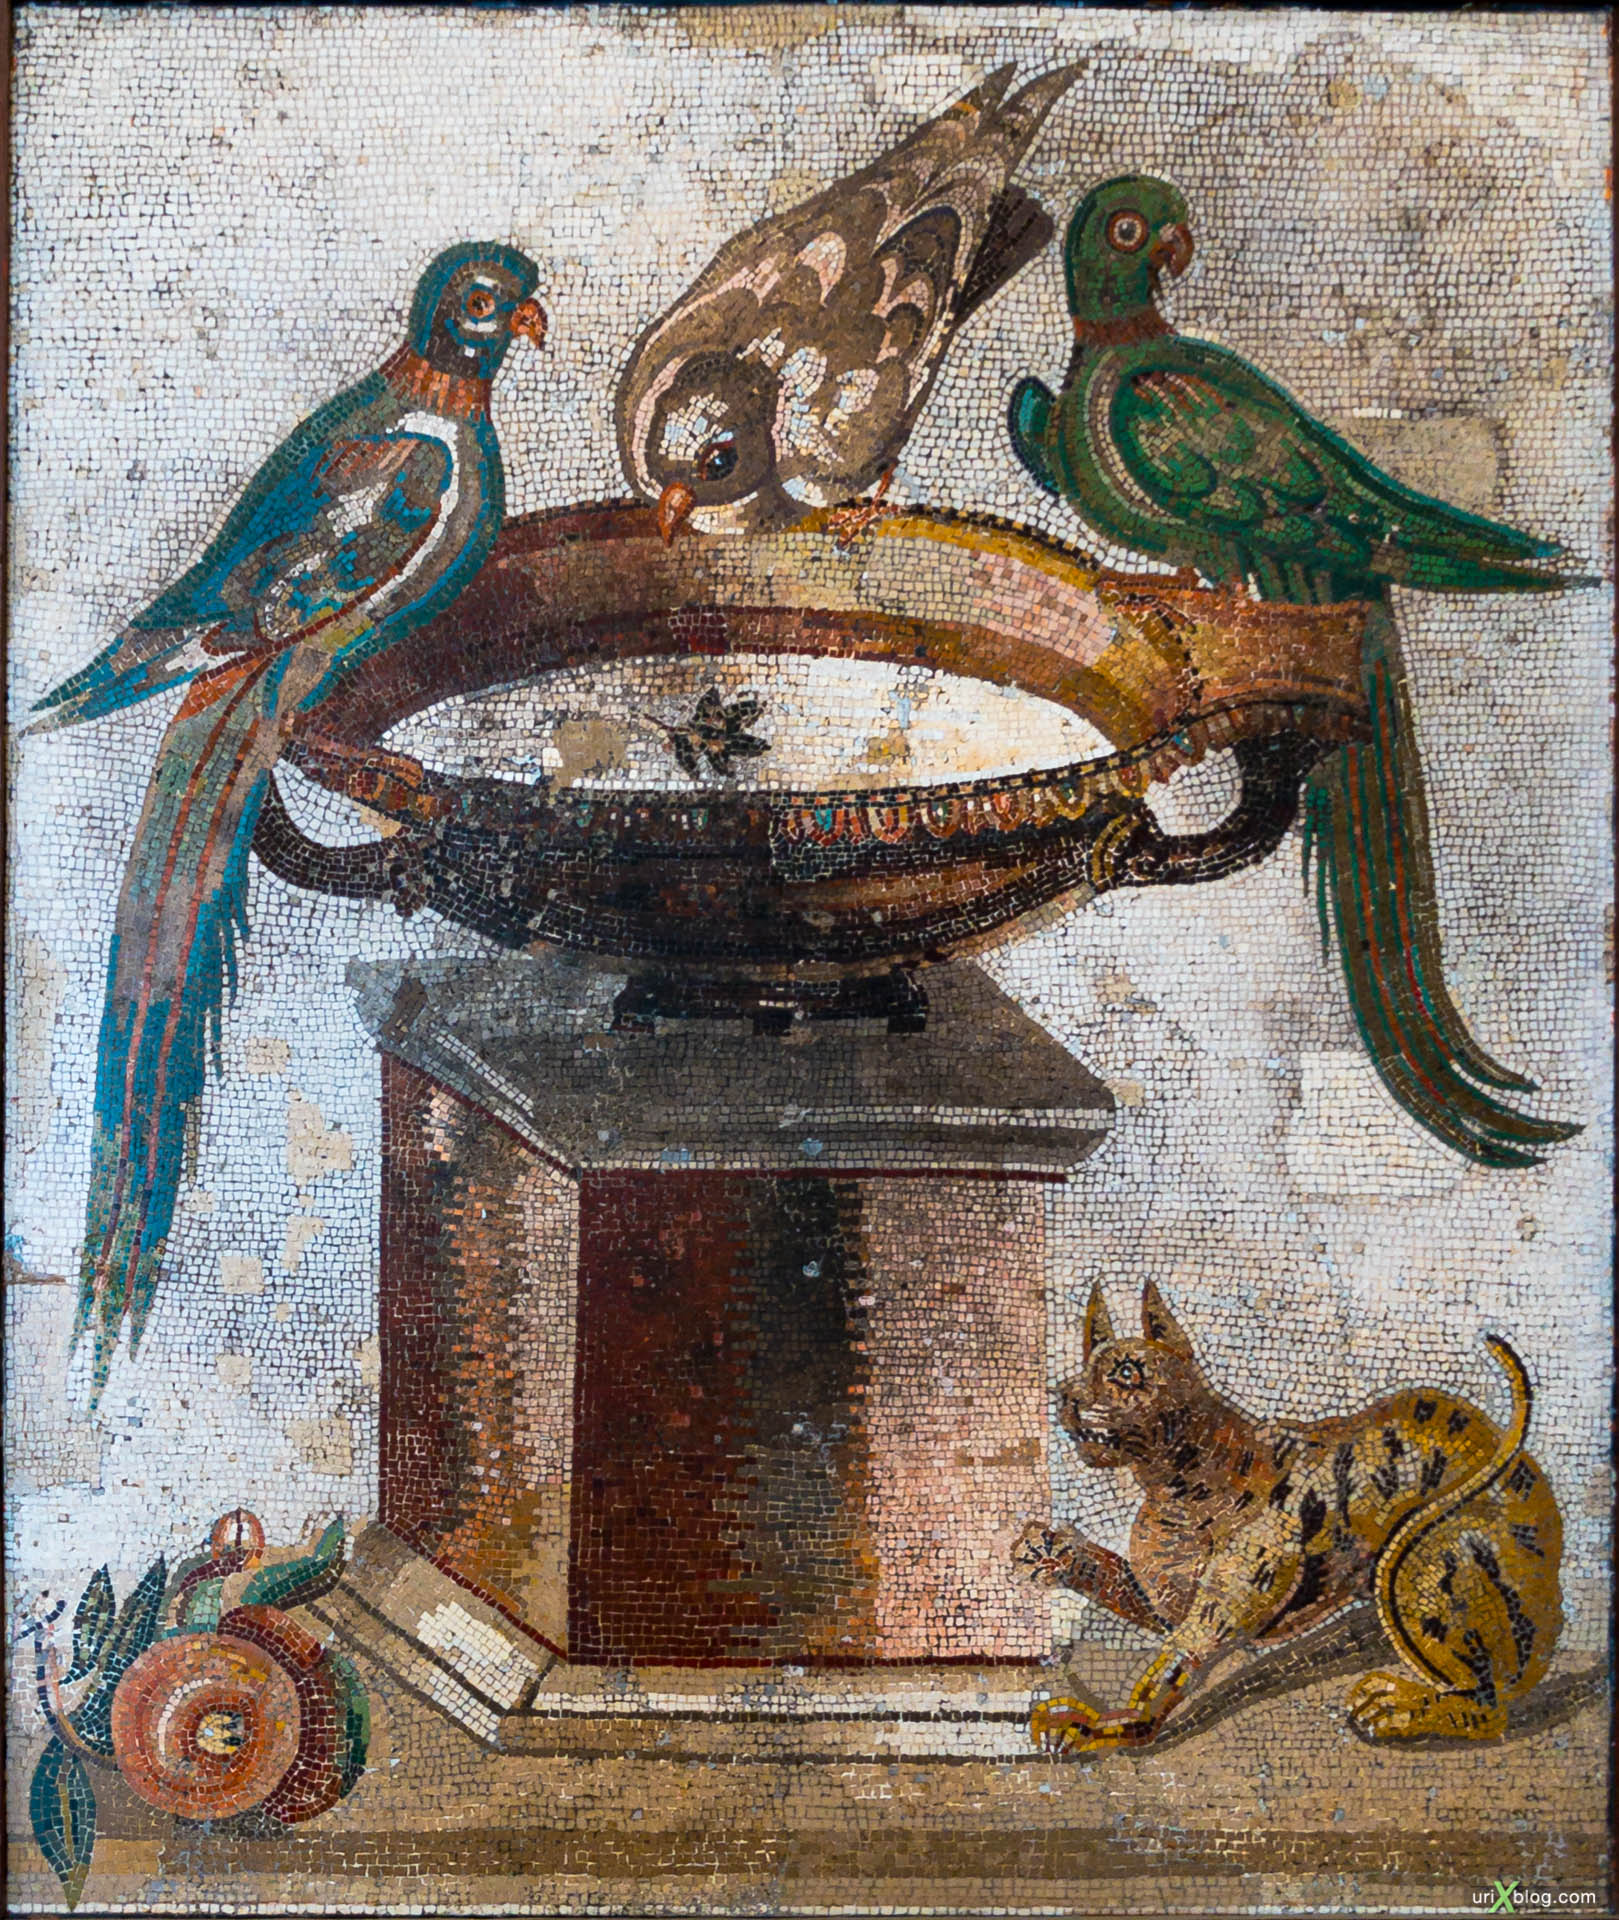 frescoes, mosaic, National Archaeological Museum of Naples, ancient Rome, Pompei, exhibition, Naples, Italy